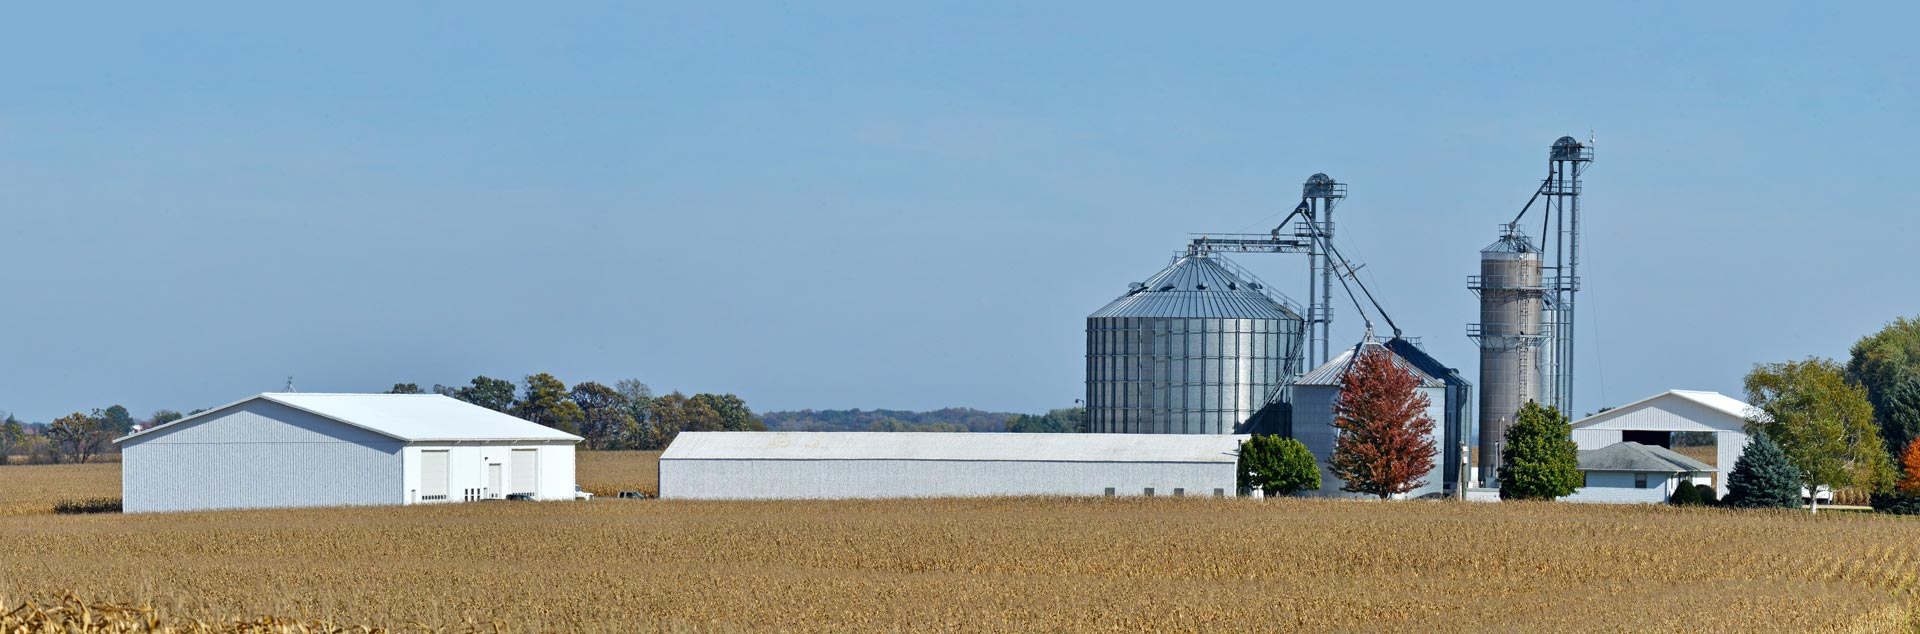 corn field with farm and grain bins in the distance